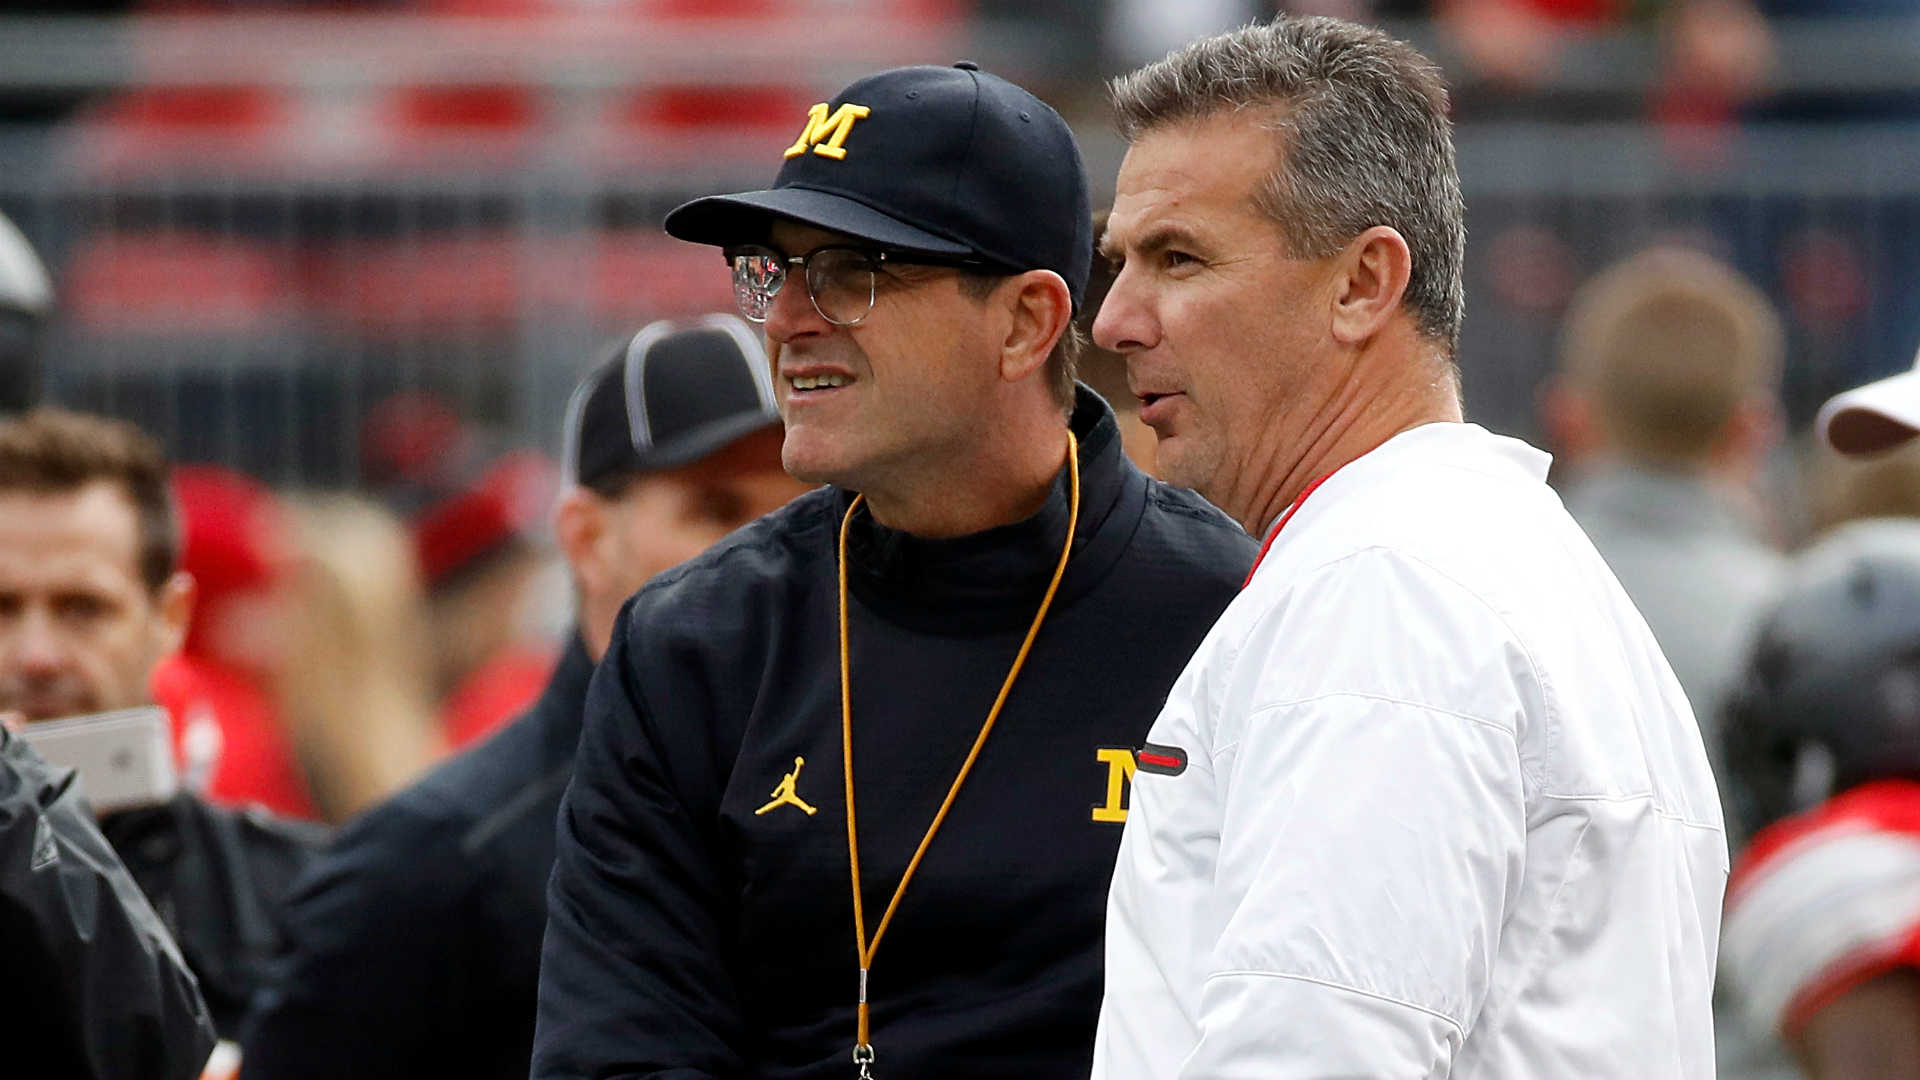 Jim Harbaugh takes shot at Urban Meyer: 'Controversy follows everywhere he's been'